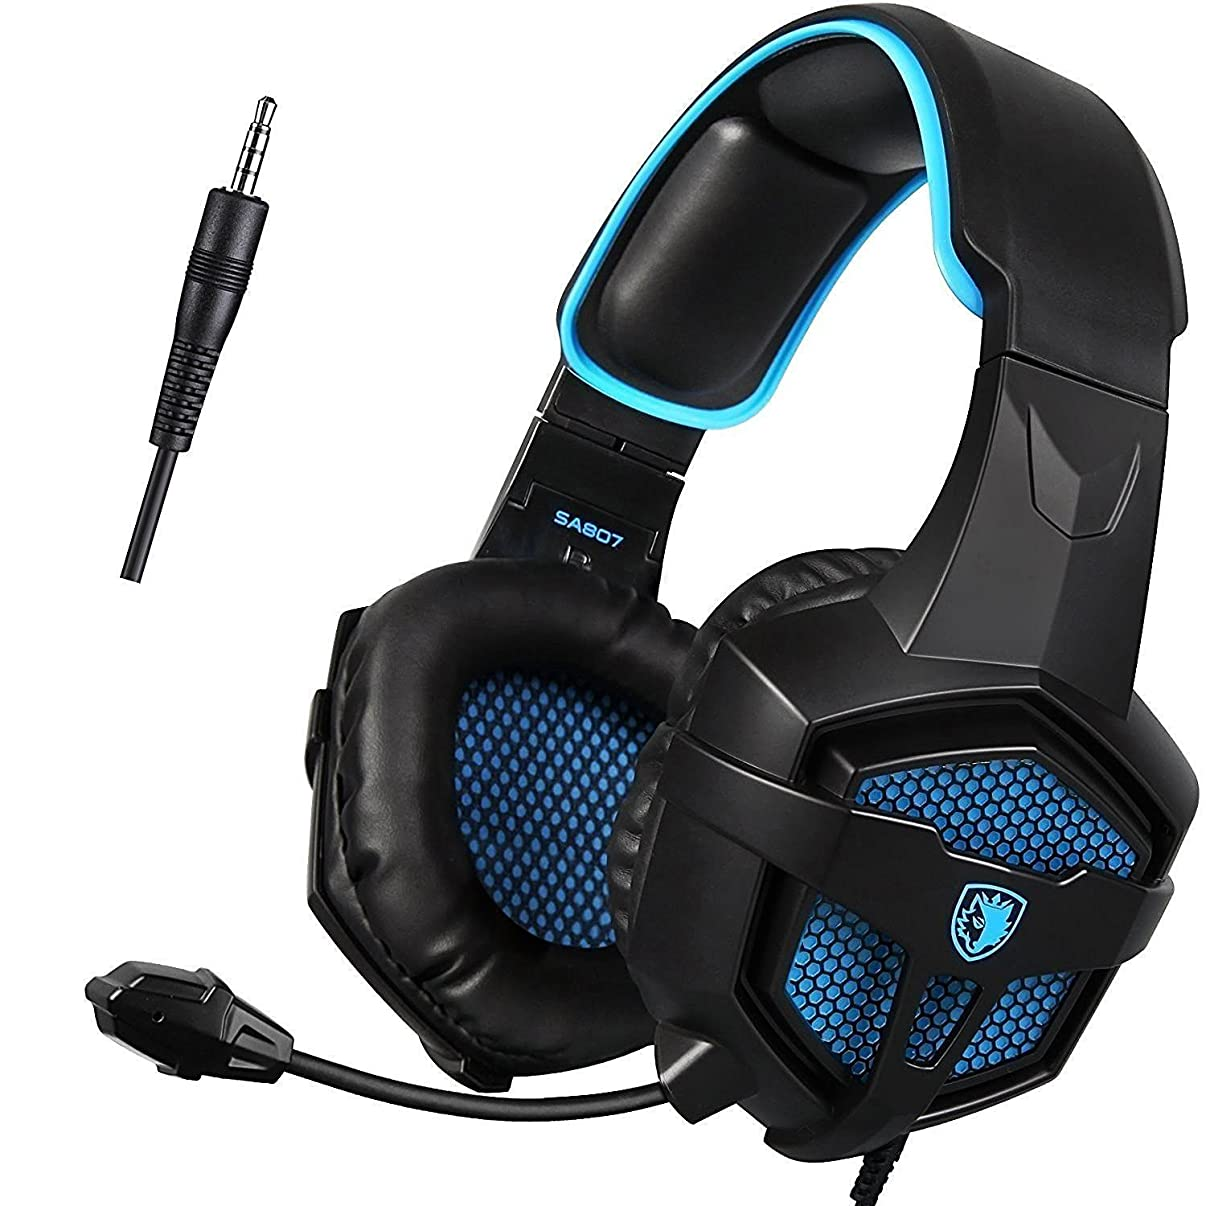 SADES SA807 Version Stereo Gaming Headset 3.5mm Wired with Mic and Volume Control for PS4/PC/Mac/New Xbox one/Laptop/iPad/iPod (Black/Blue)